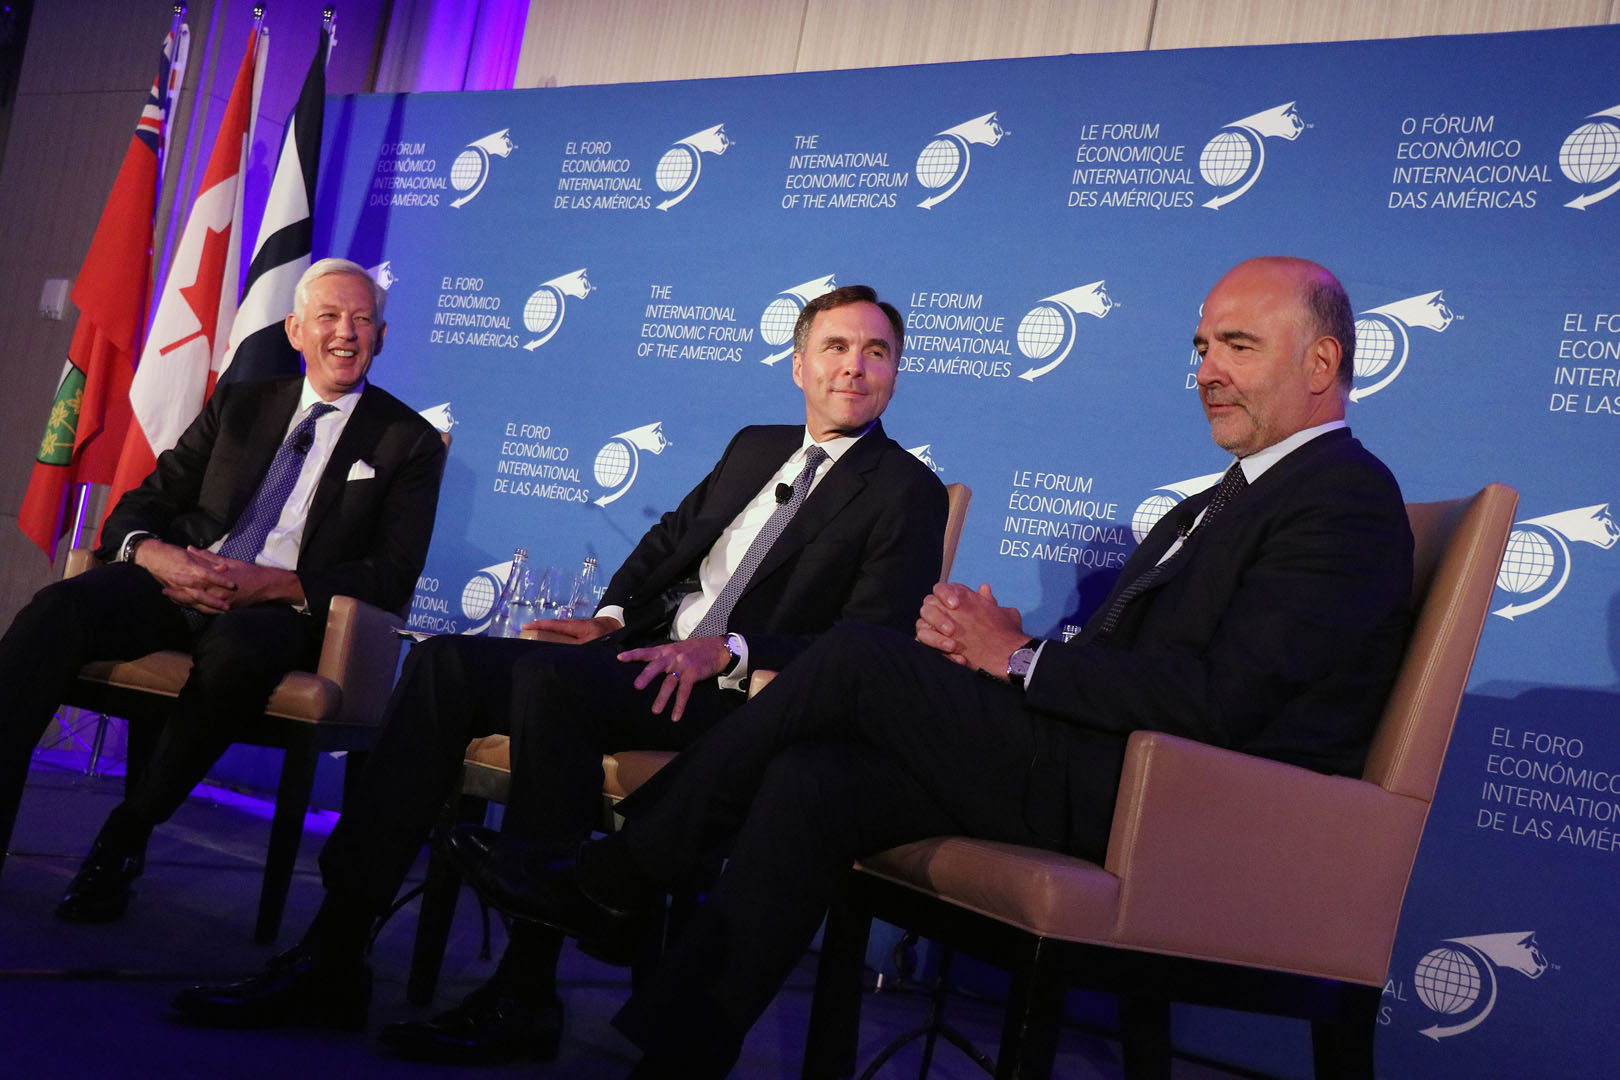 Executive Club Dinner - Dominic Barton, Global Managing Partner Emeritus, McKinsey & Company; William Francis Morneau, Minister of Finance, Canada; and Pierre Moscovici, Commissioner for Economic and Financial Affairs, Taxation and Customs, European Commission